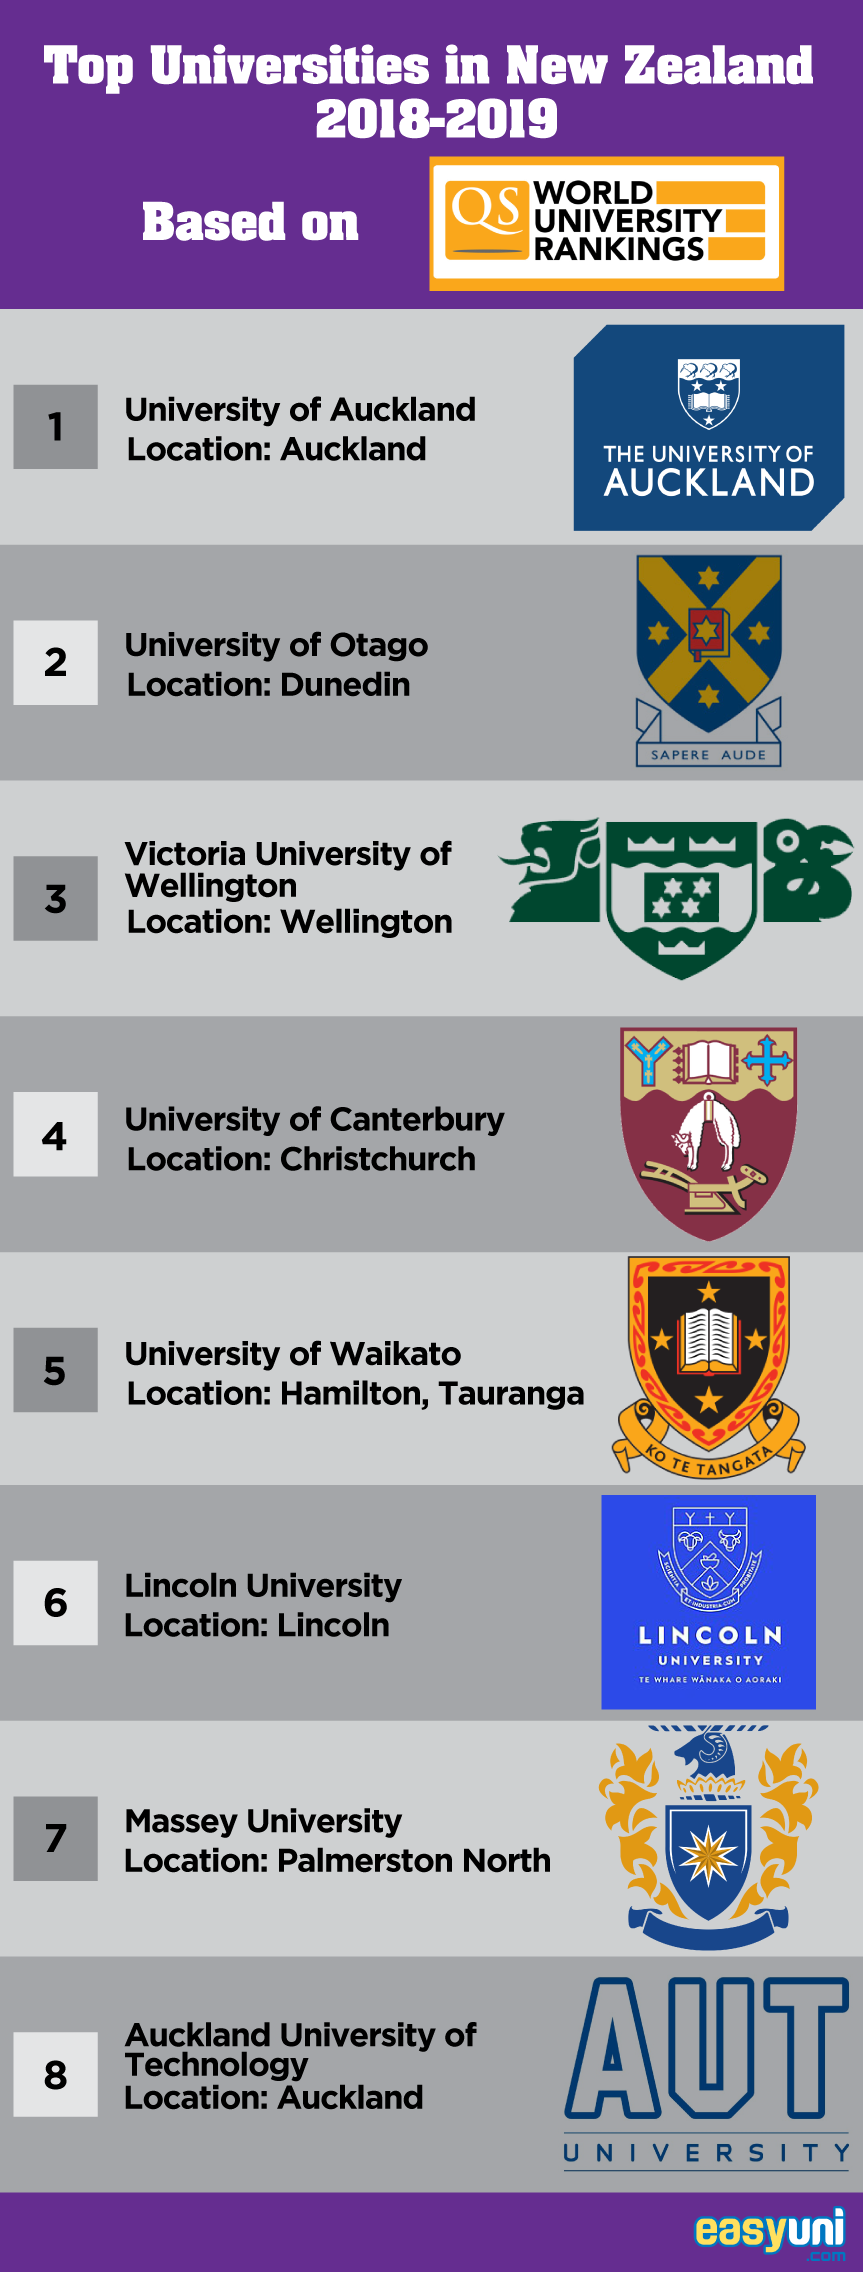 Top Universities in New Zealand 2019